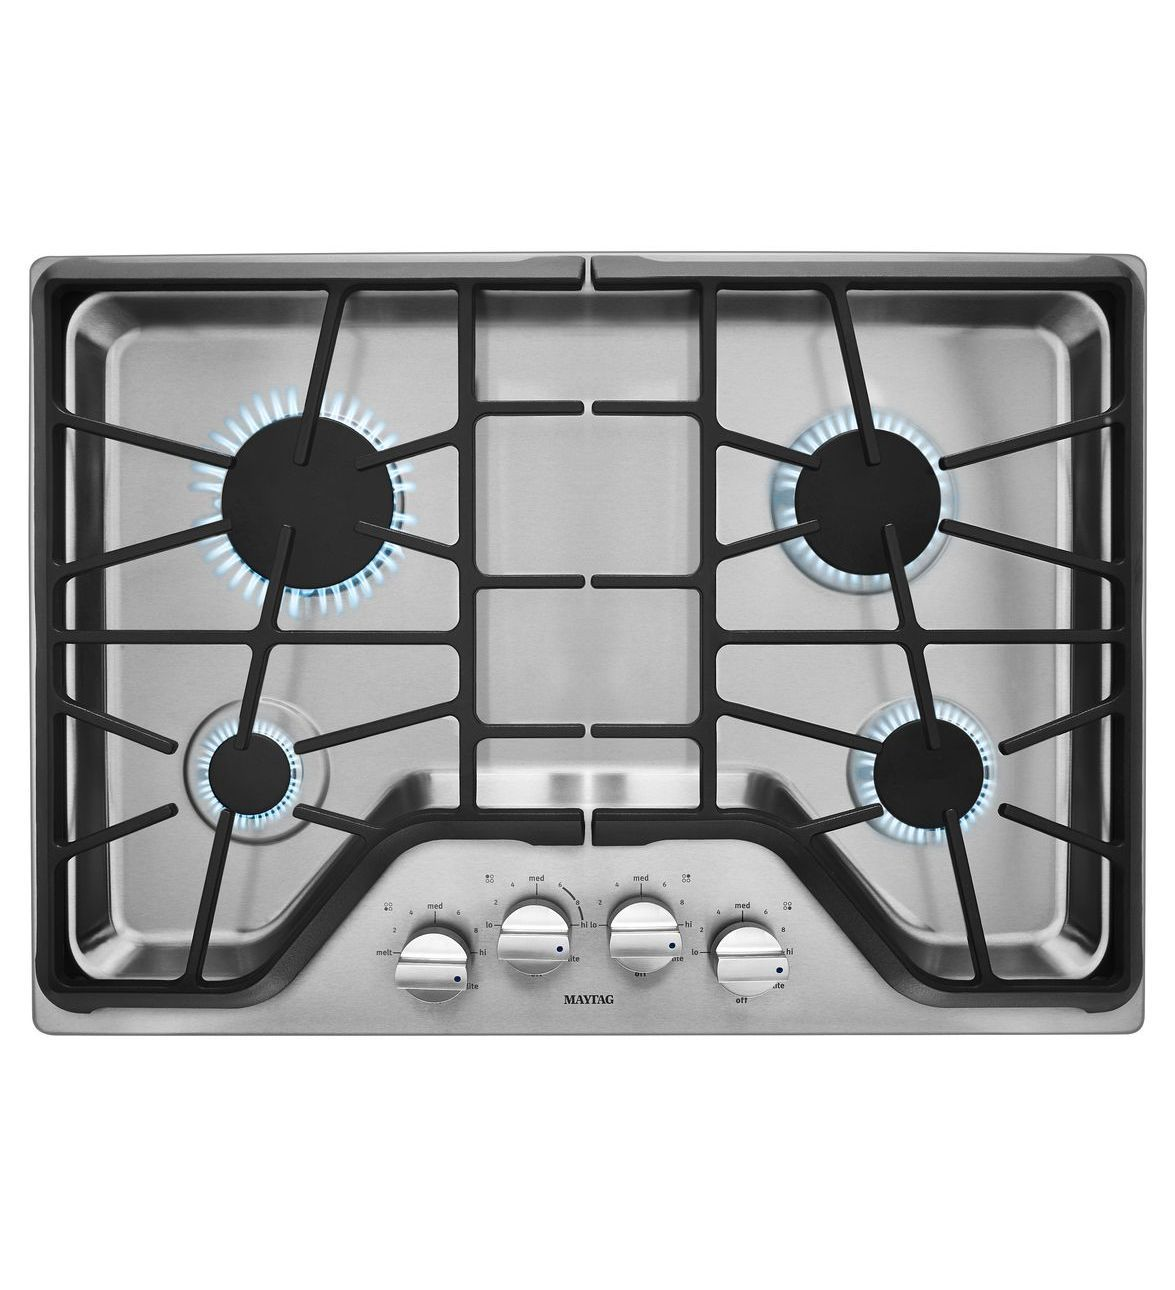 Inch burner gas cooktop with duraguard protective finish